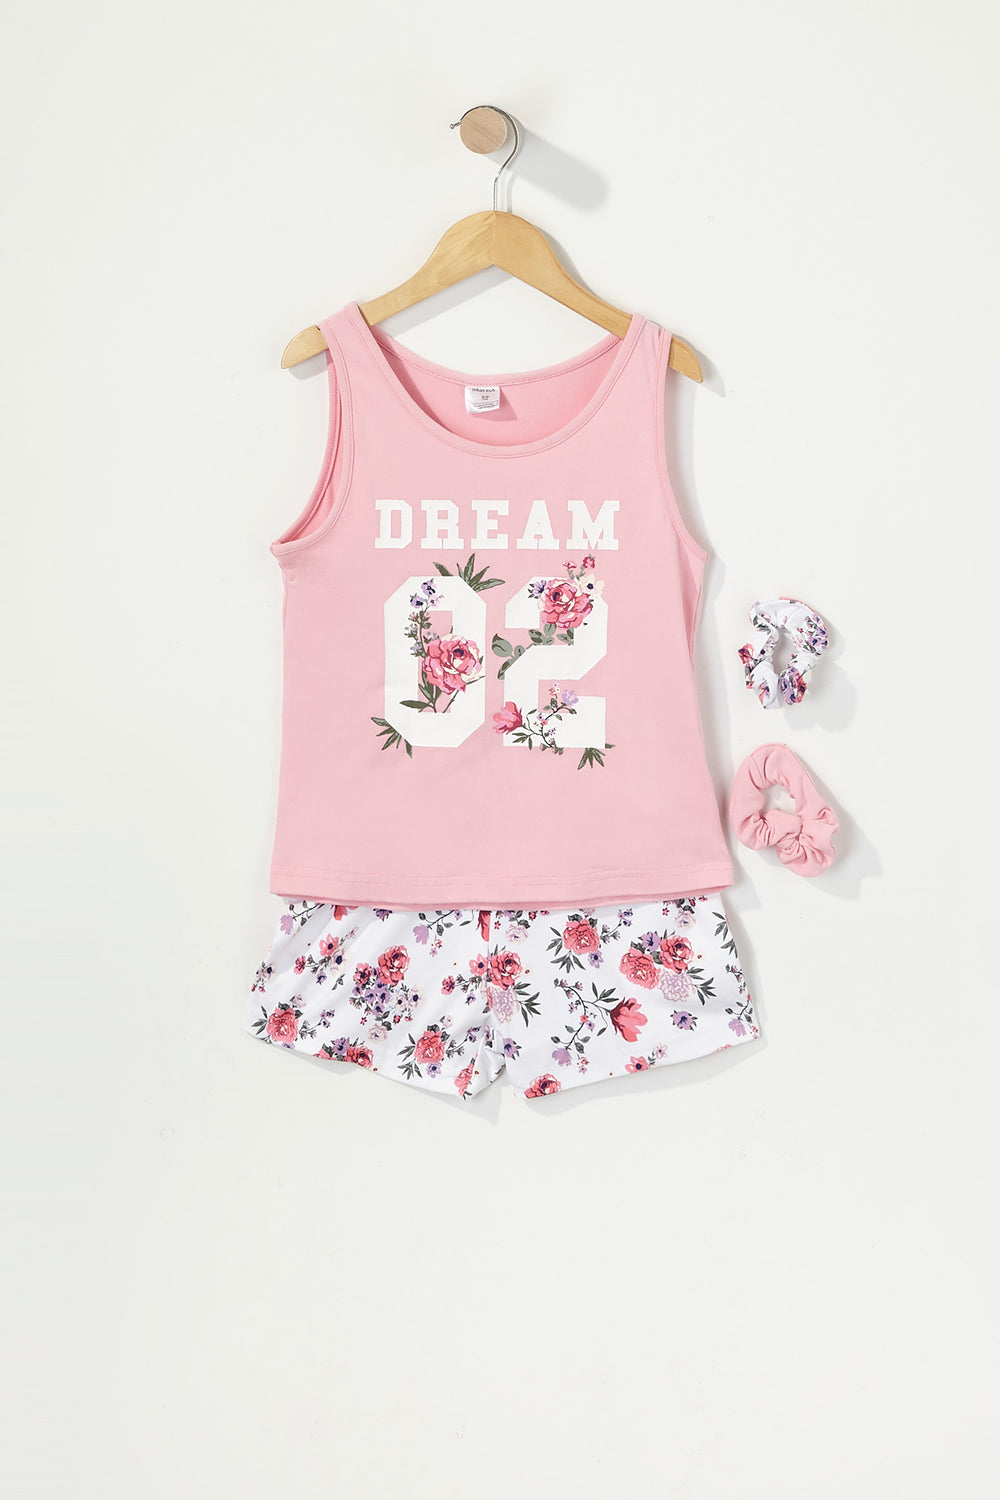 Girls 3-Piece Graphic T-Shirt and Short Pajama Set with Scrunchies Pink